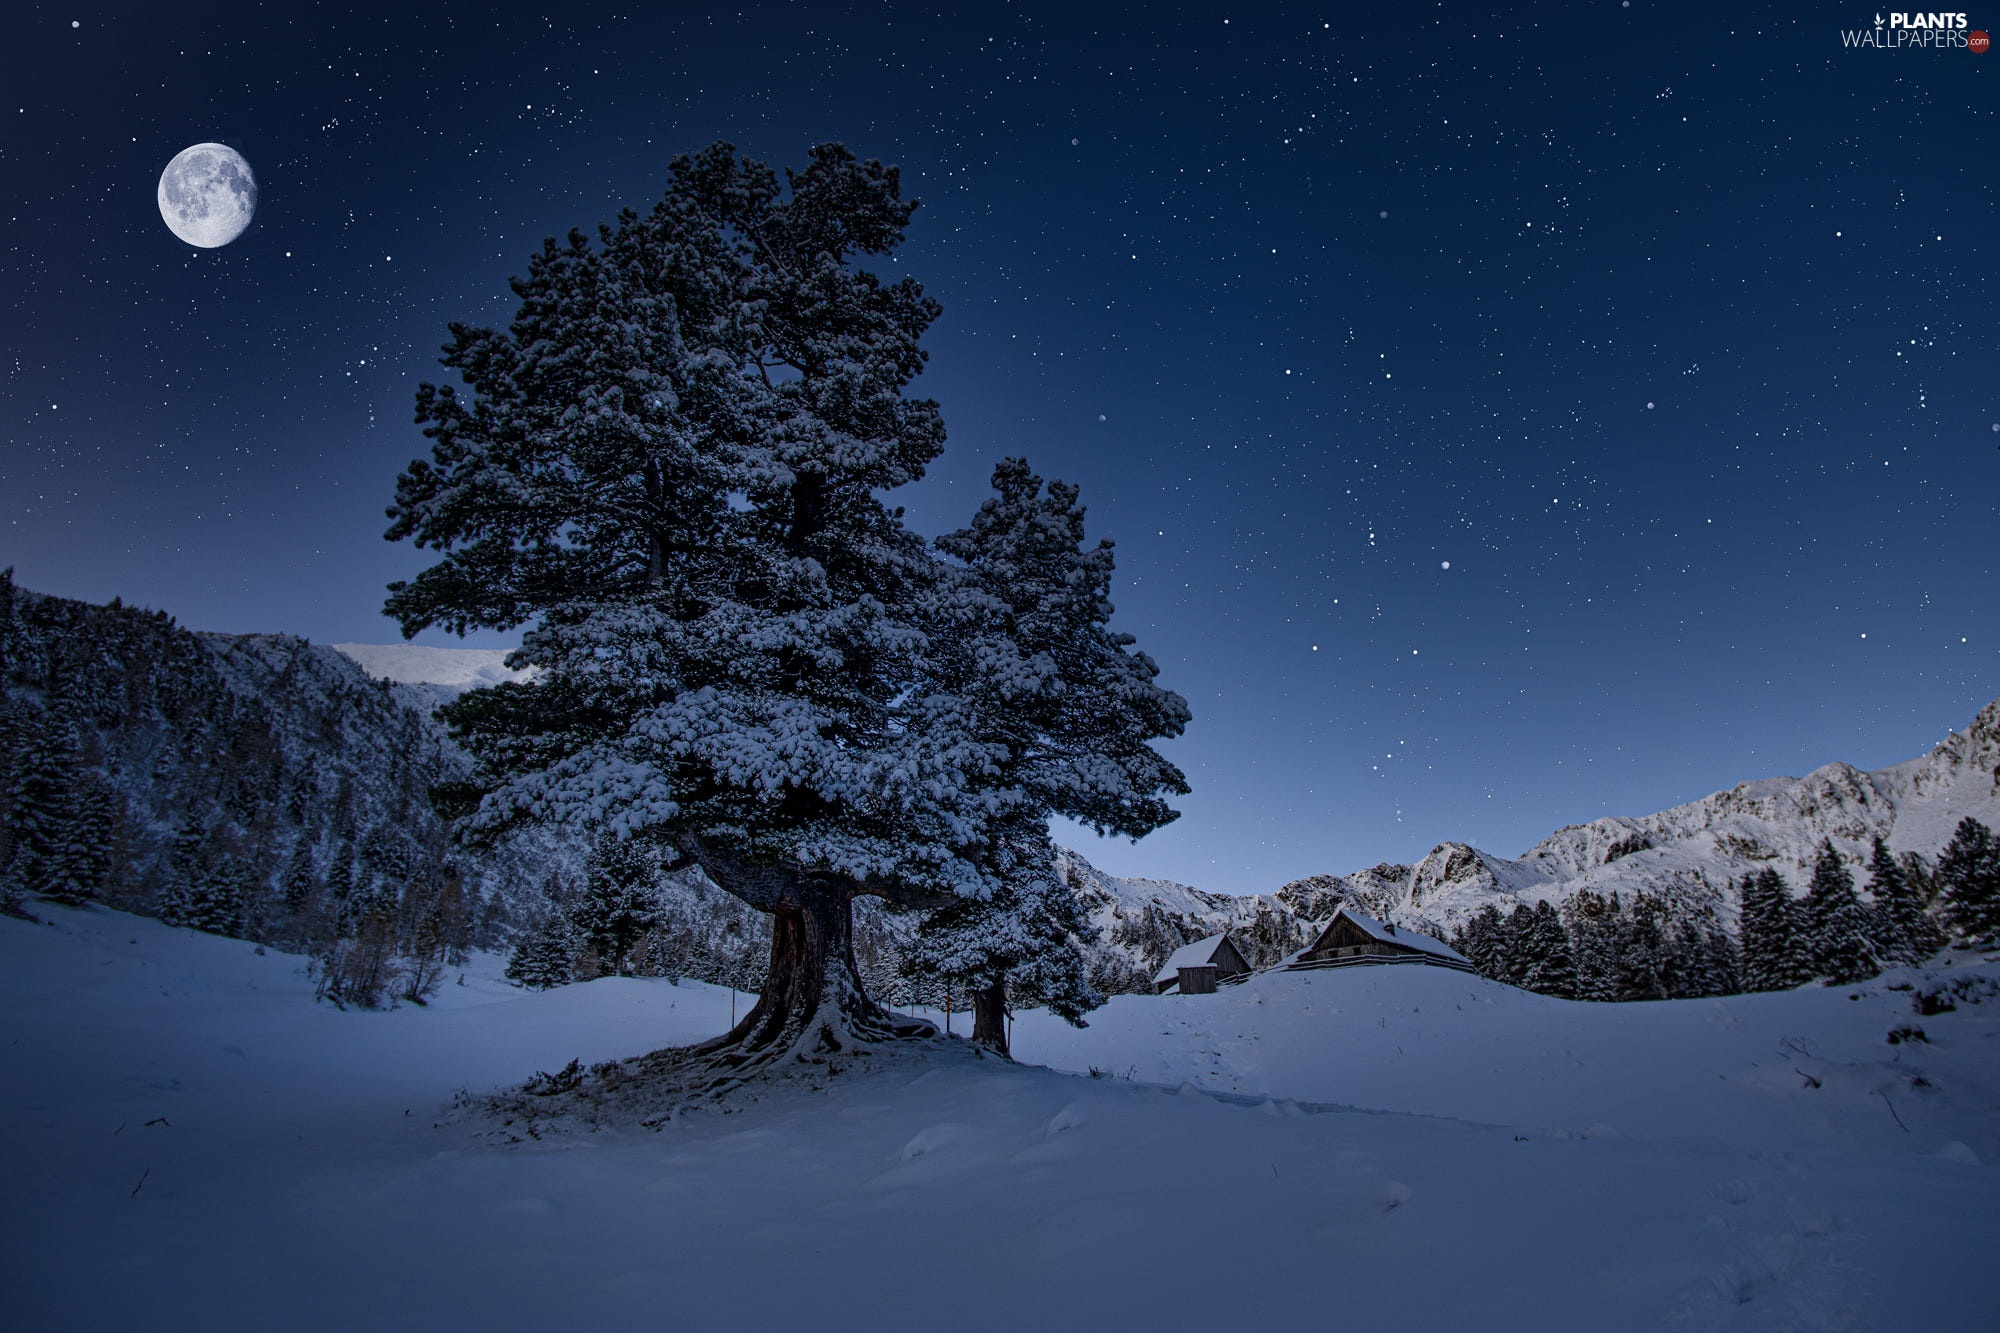 Night, winter, moon, star, Houses, snow, Mountains, forest, trees